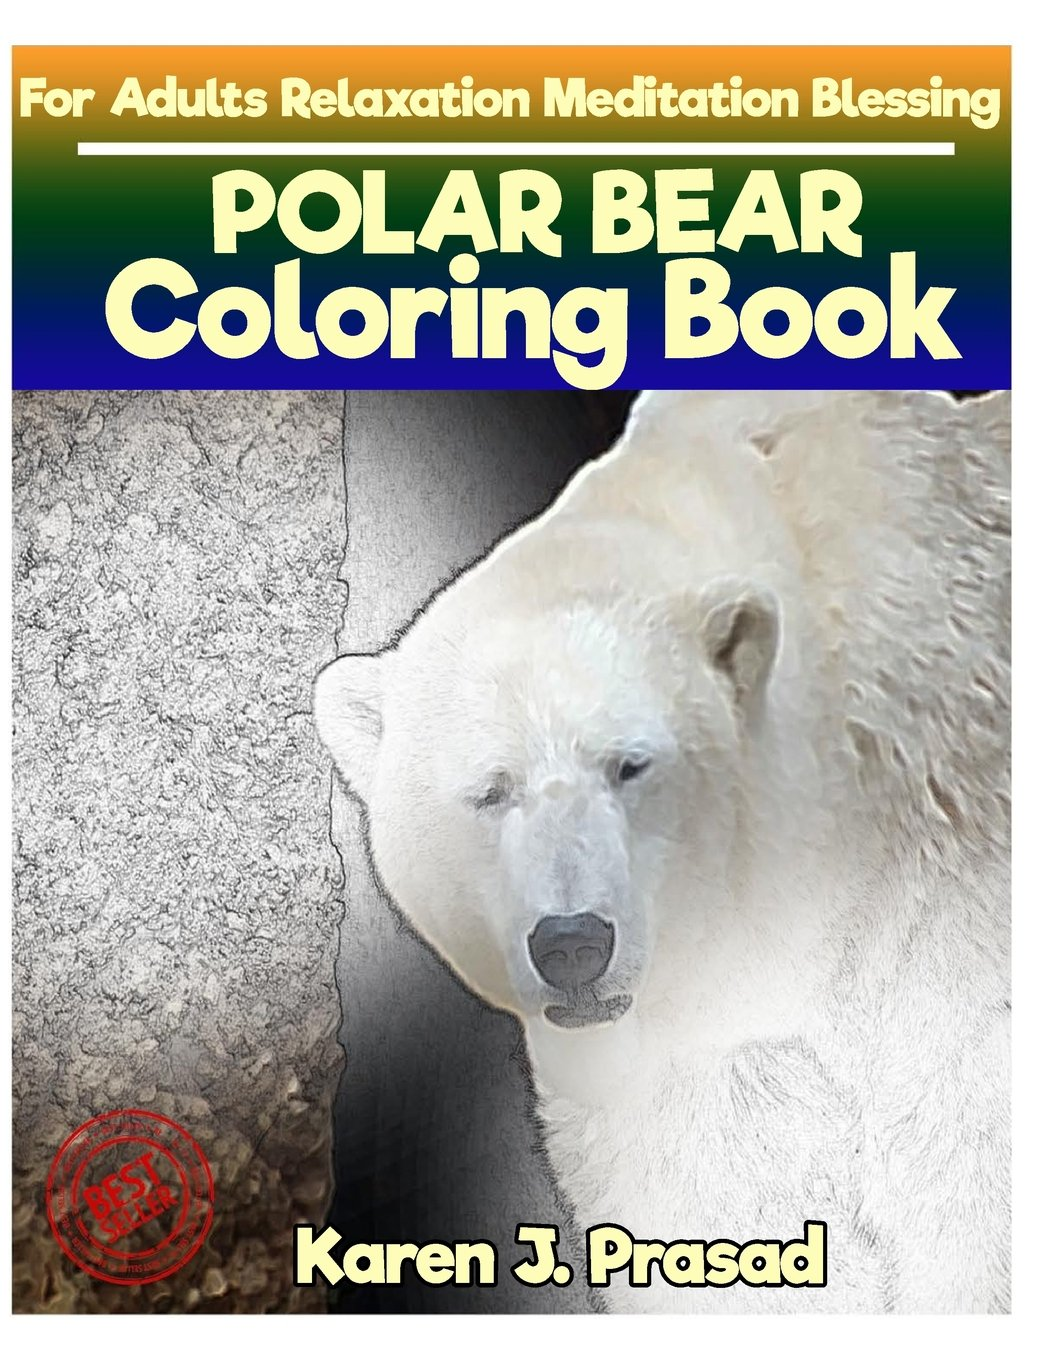 POLAR BEAR Coloring book for Adults Relaxation  Meditation Blessing: Sketches Coloring Book  Grayscale Images PDF